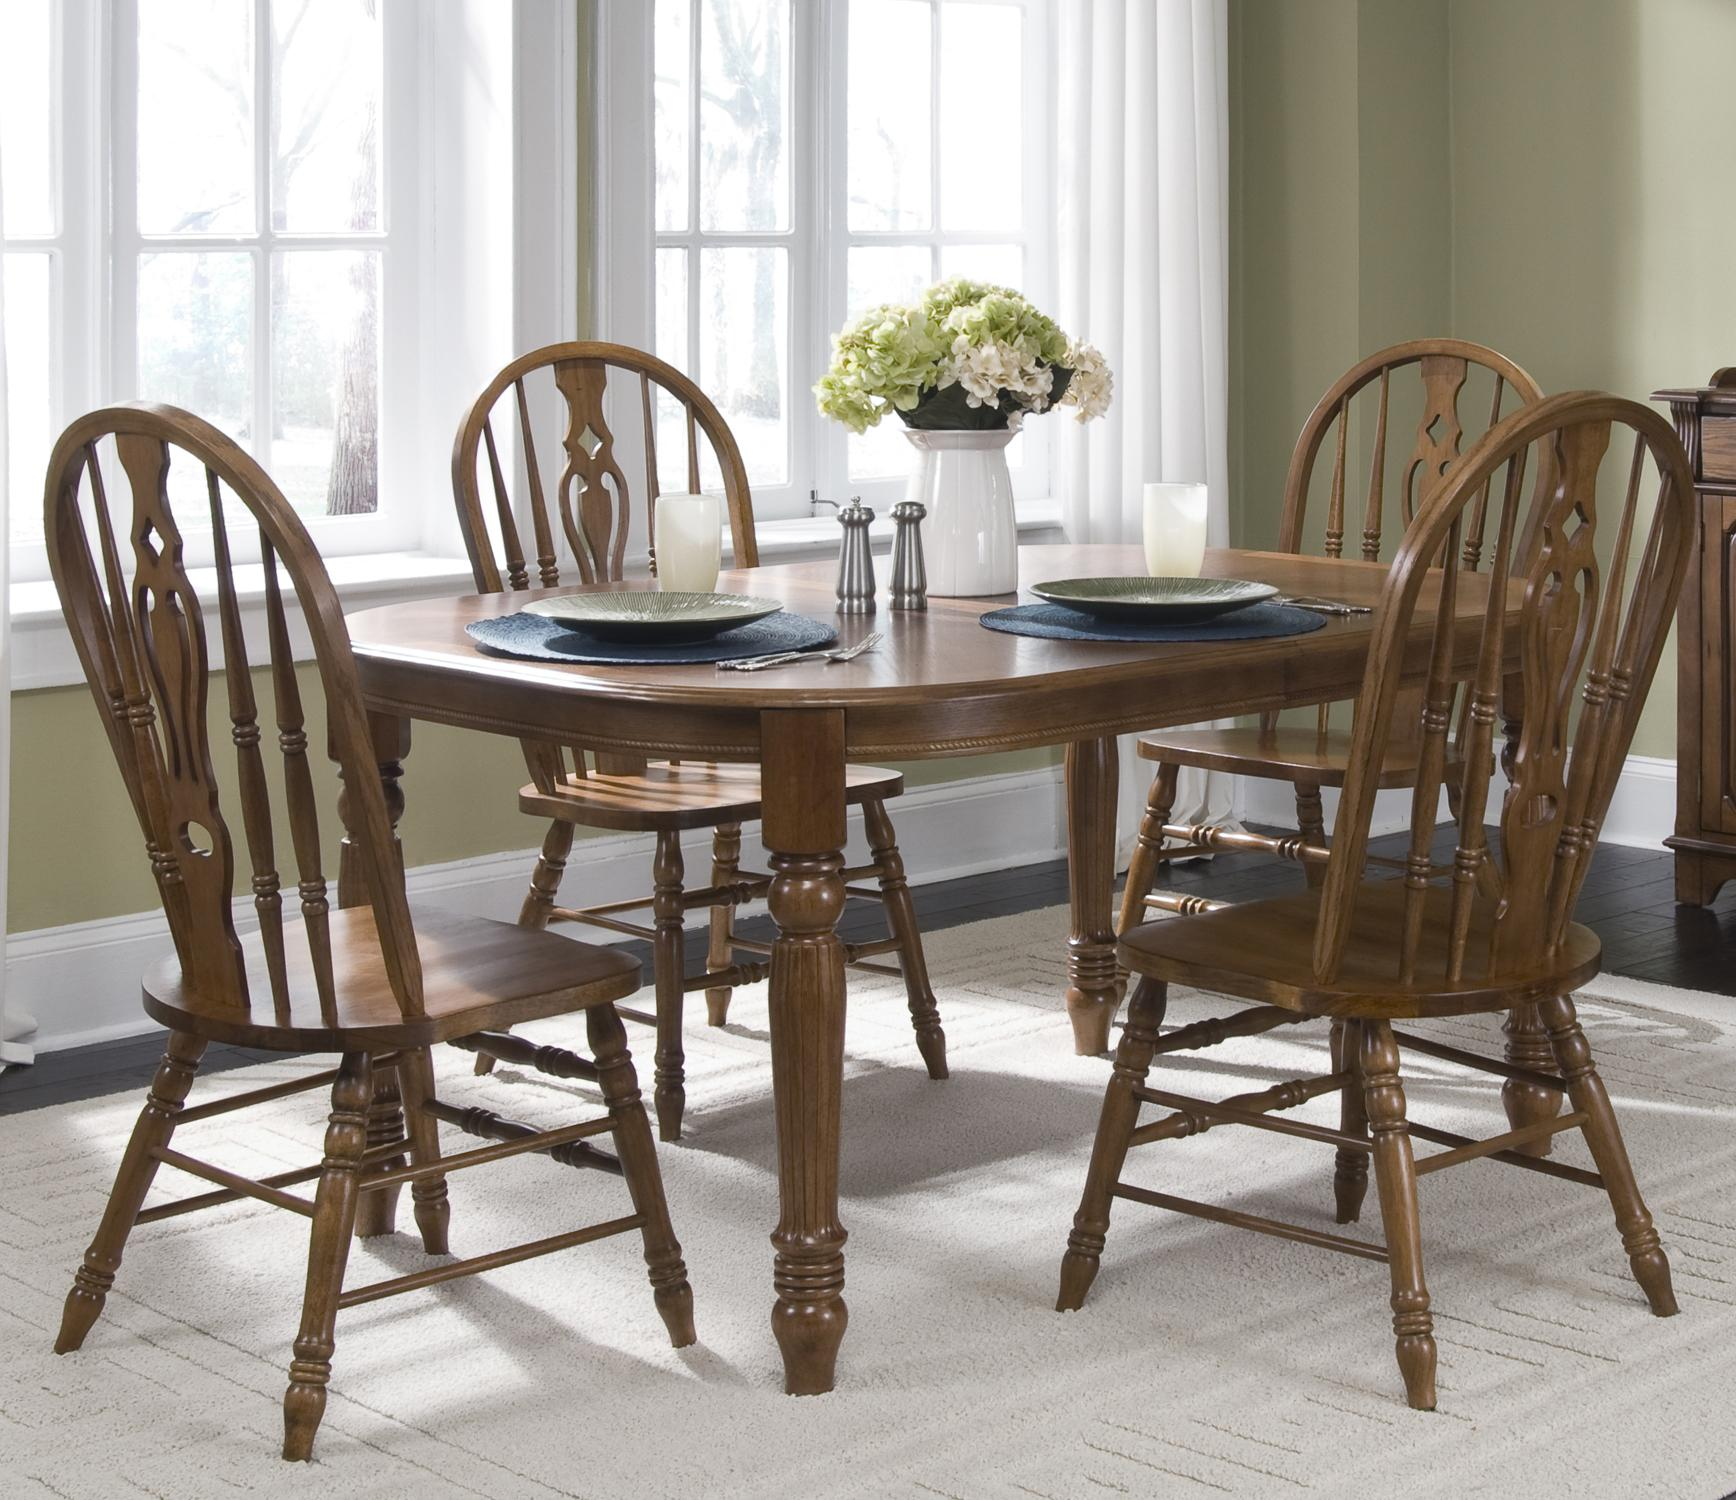 Liberty Furniture Old World Casual Dining Five Piece Dining Set - Item Number: 18-CD-SET15